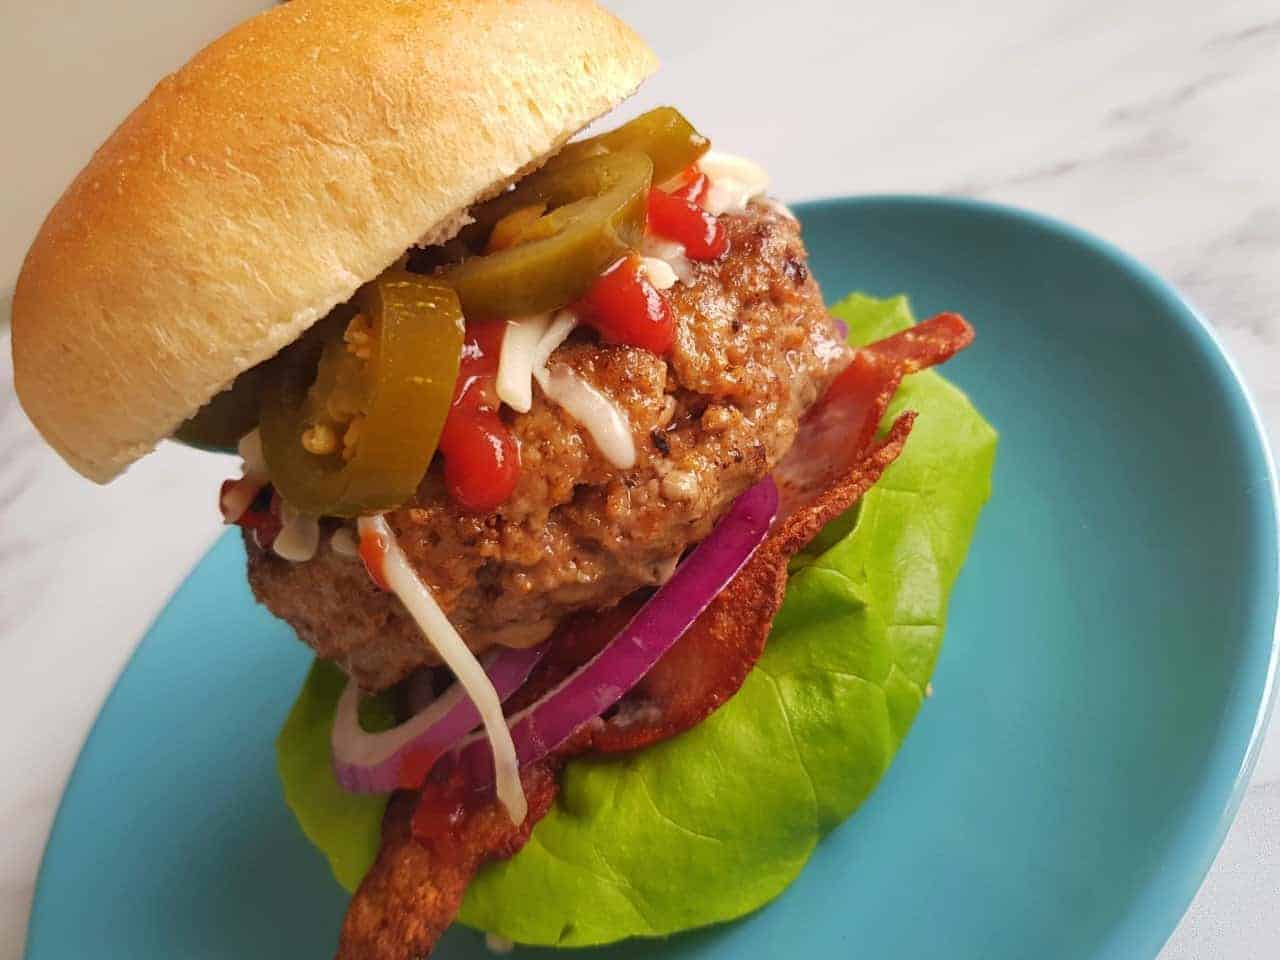 A delicious spicy beef burger on a blue plate.